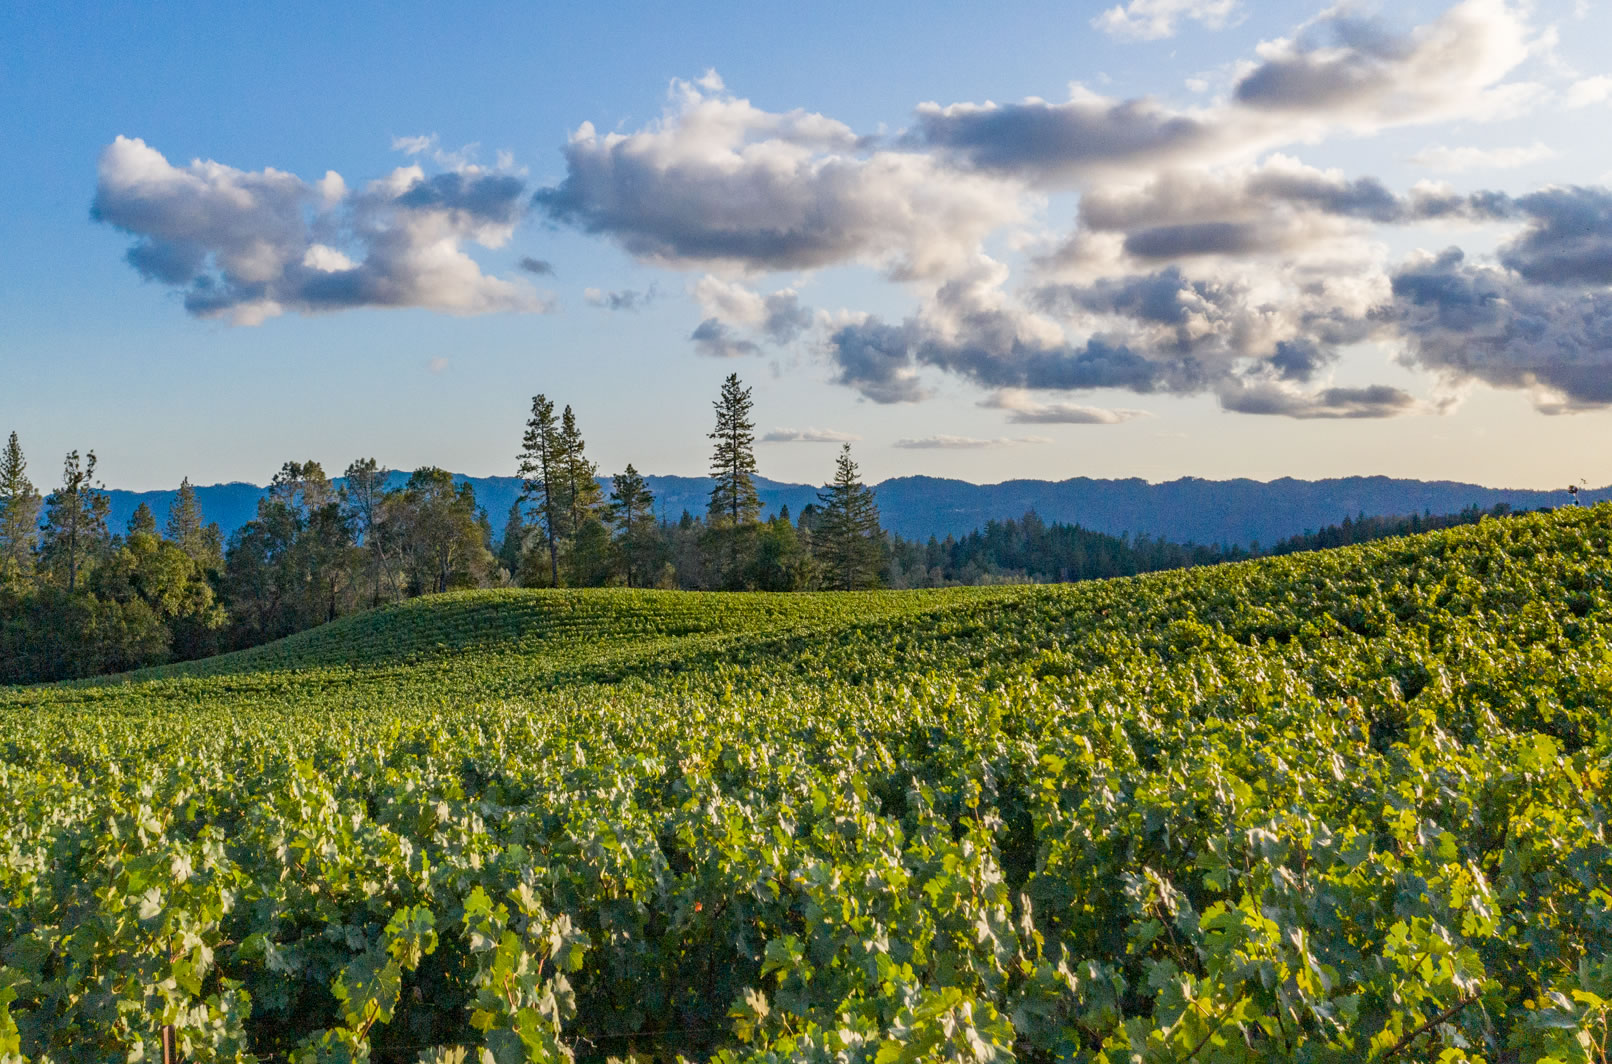 O'Shaughnessy Estate Winery's Howell Mountain Vineyard